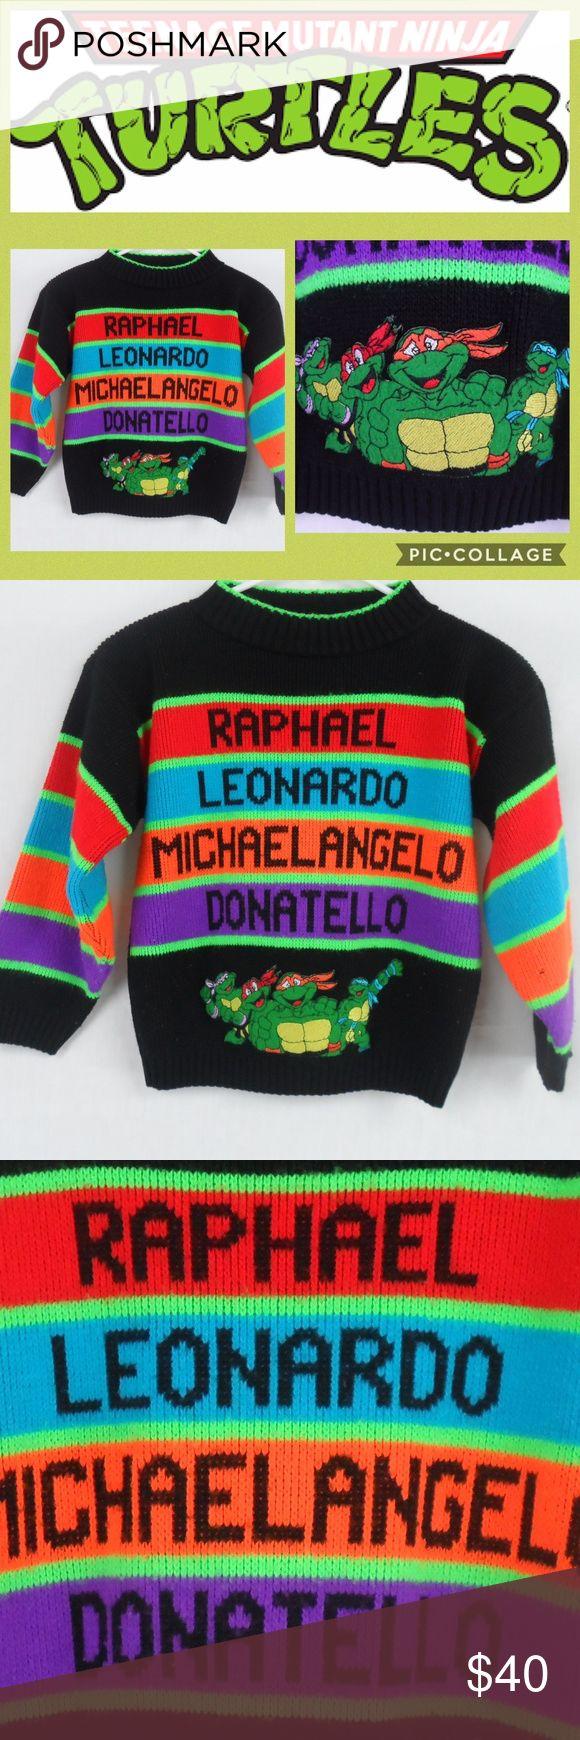 90s Teenage Mutant Ninja Turtles Sweater Super cool!!  90s (Hot Cashews) Acrylic-Neon  **Small Snag On Left Sleeve (See Last Photo)** KIds Size: Small/Medium  (Unisex) Hot Cashews Shirts & Tops Sweaters